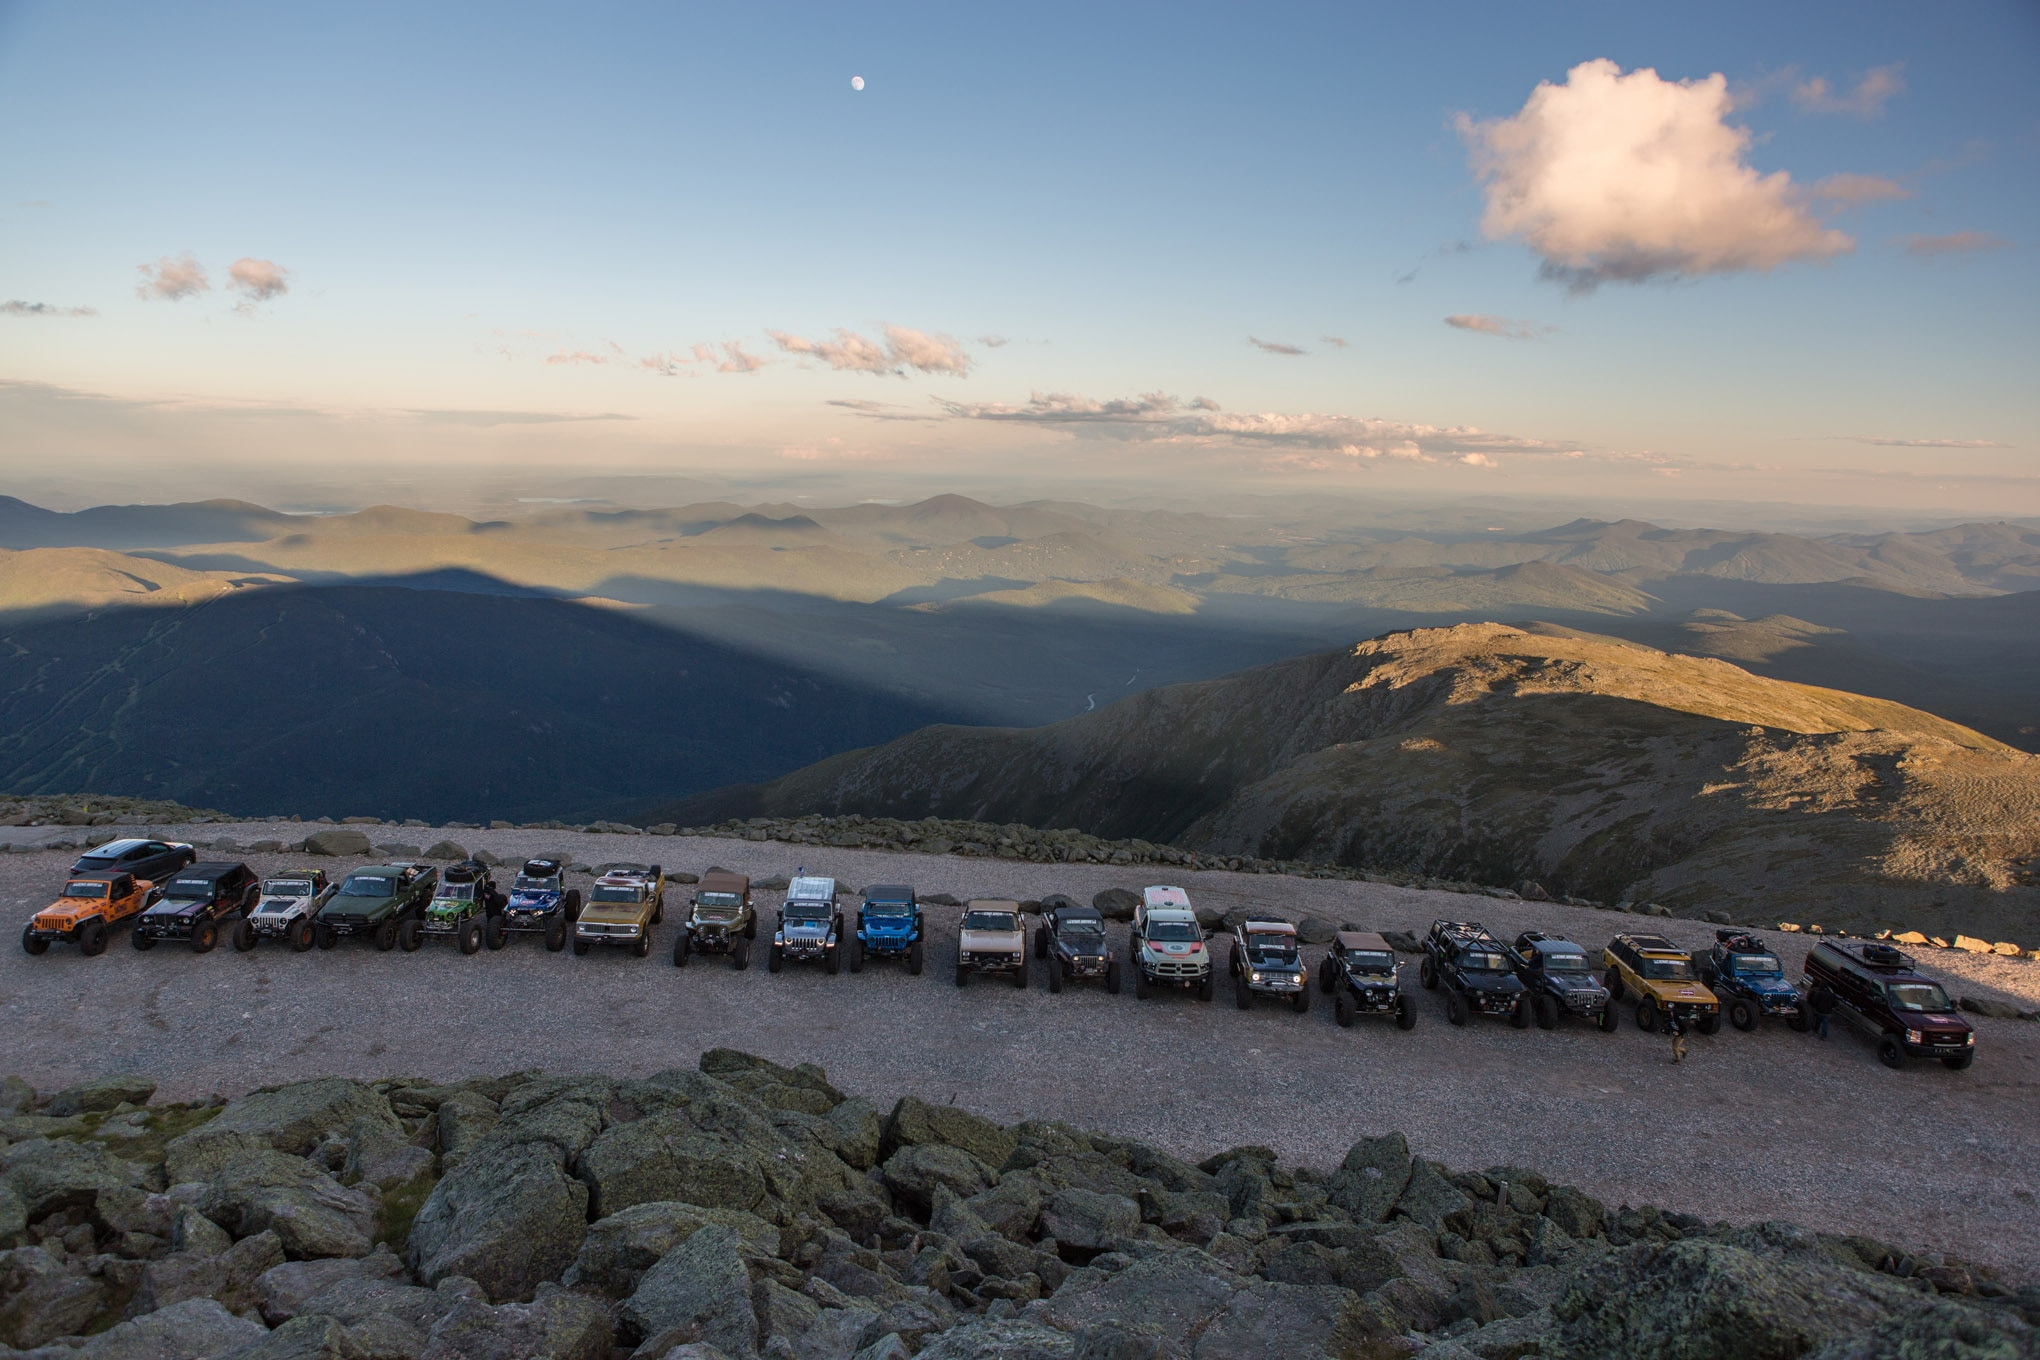 On a clear day you can see six states from the top of Mount Washington, along with the Atlantic Ocean and Canada. Despite its being cold and windy, we were blessed with an incredibly rare clear sky at the summit and beautiful views.